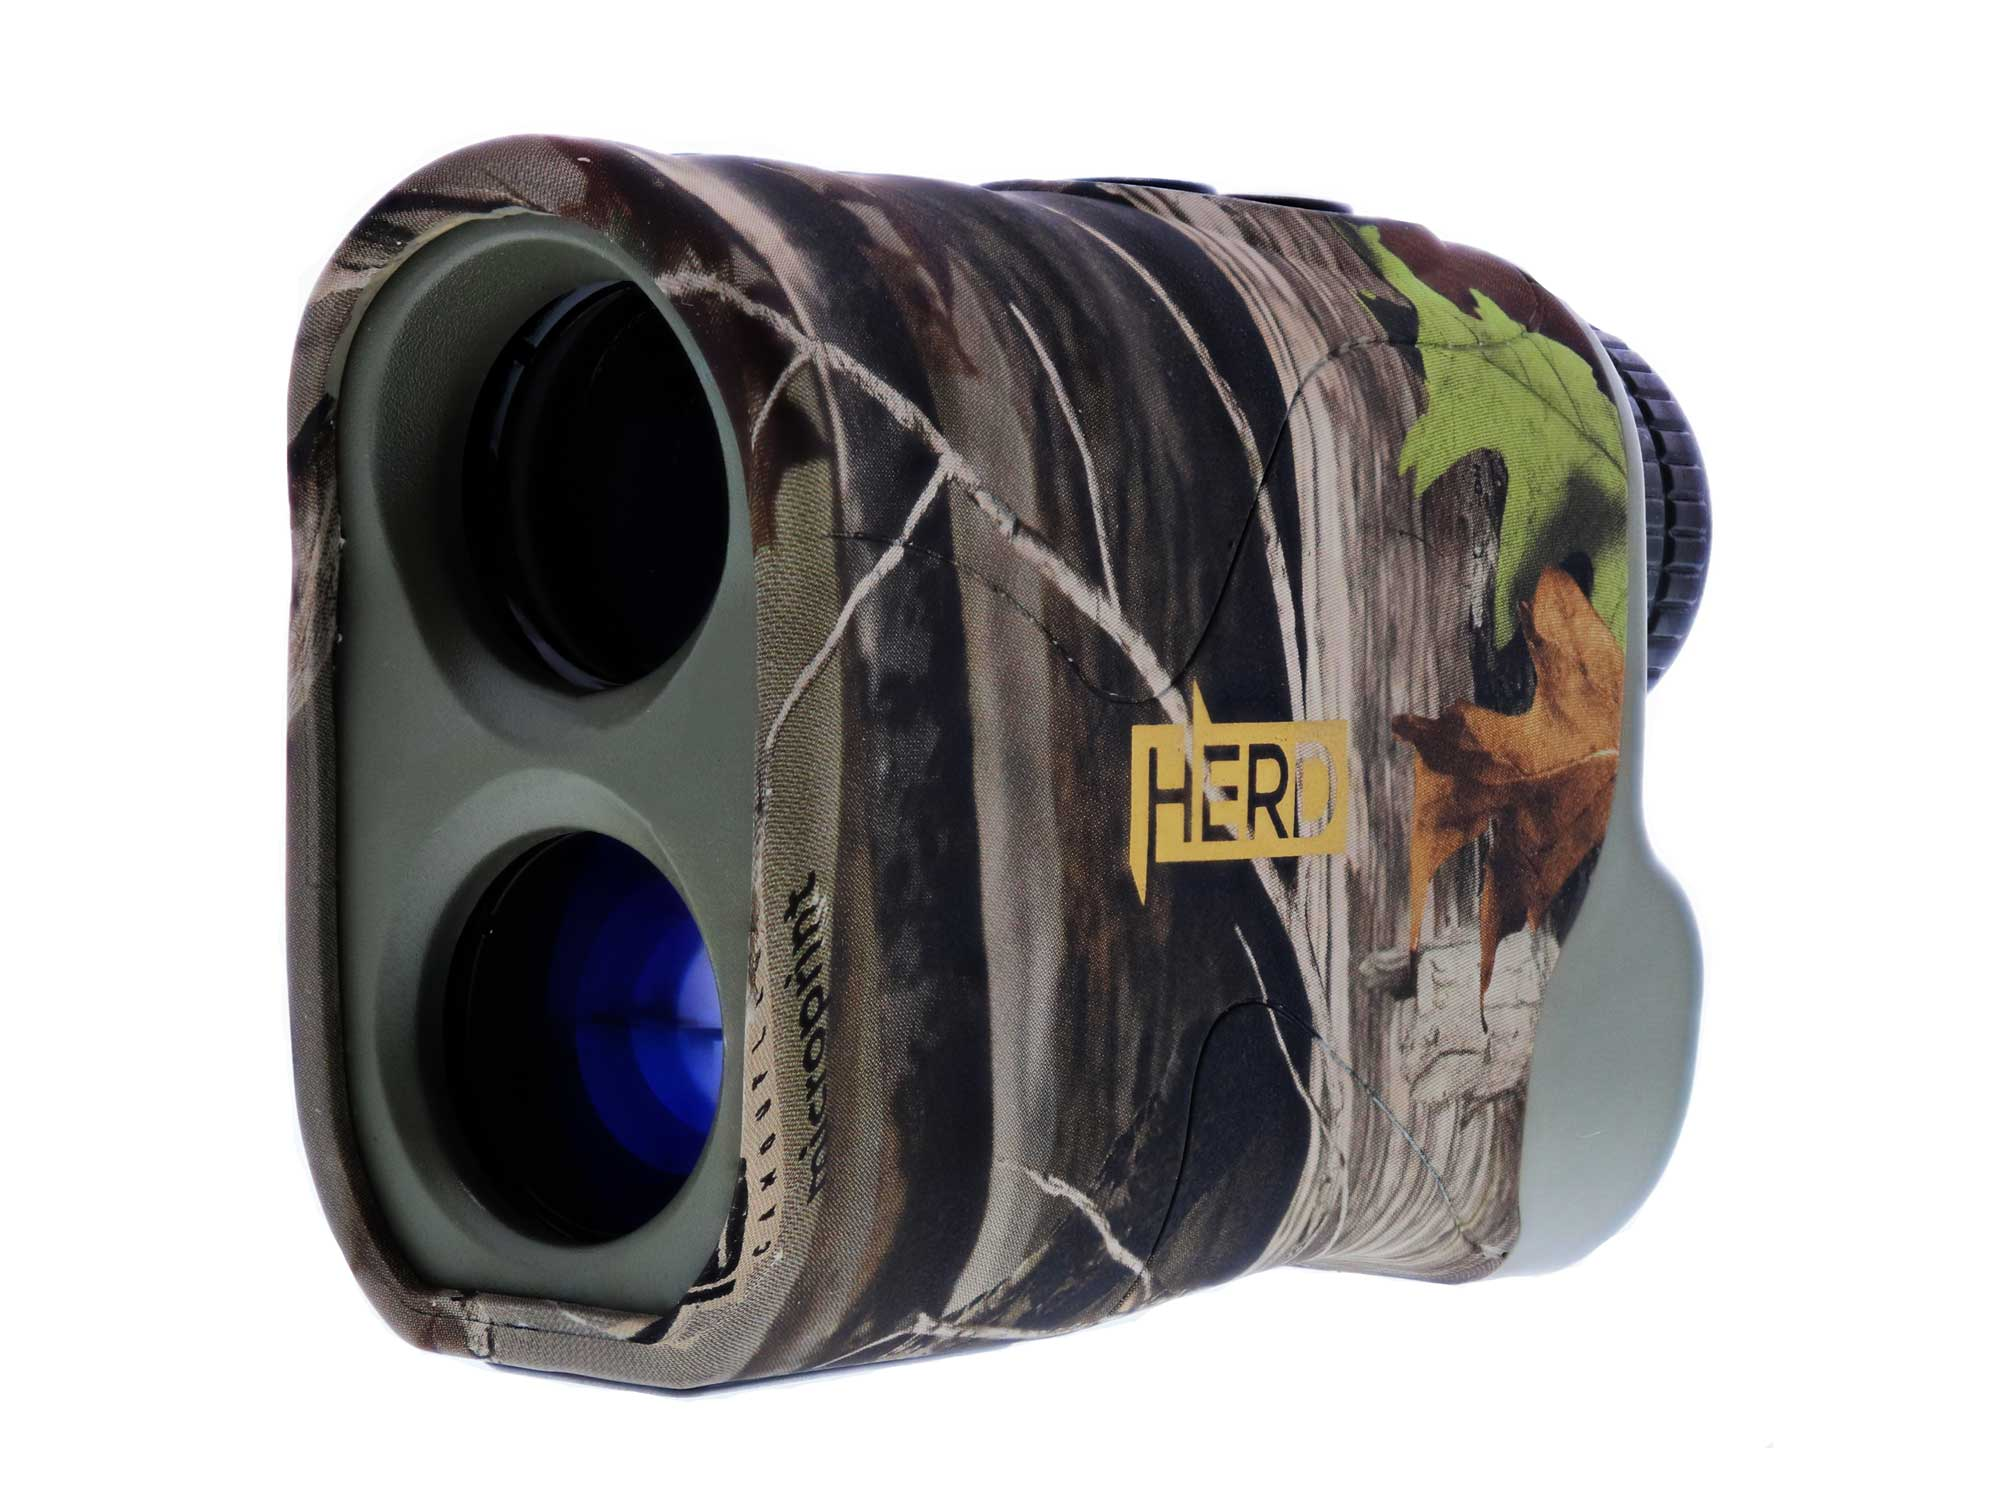 10 Things To Know Before You Buy A Rangefinder